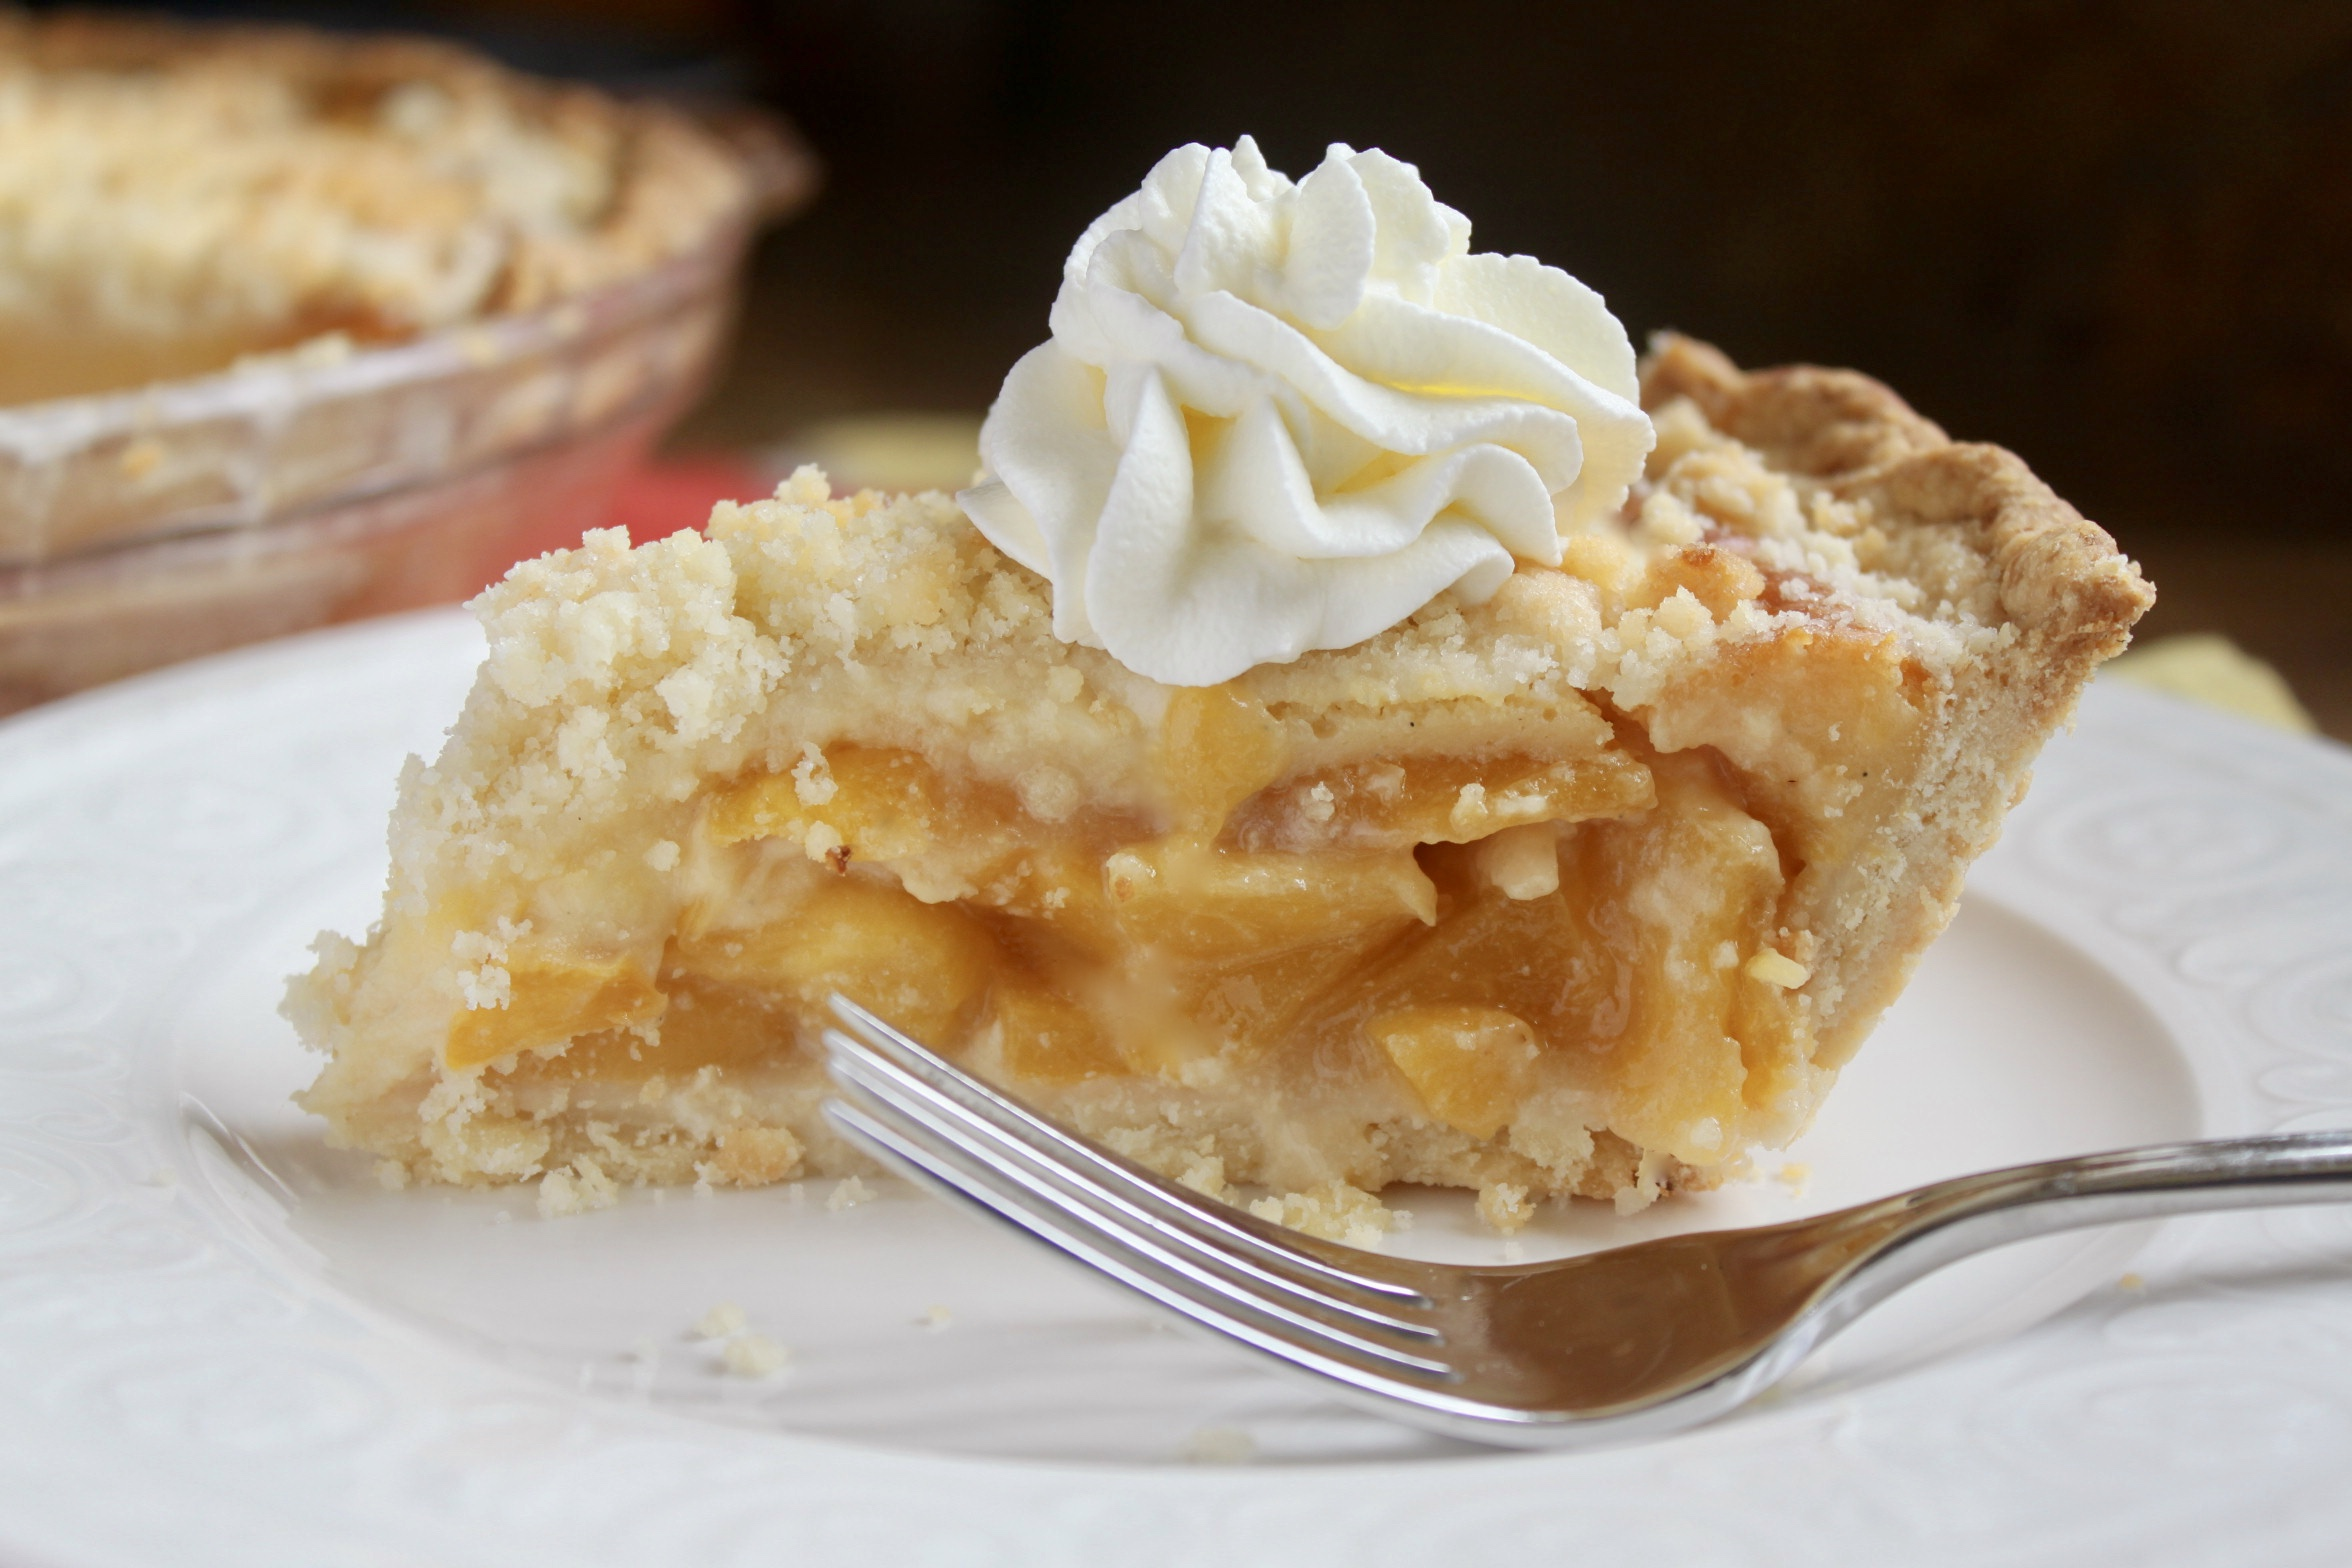 Slice of custard peach pie with cream